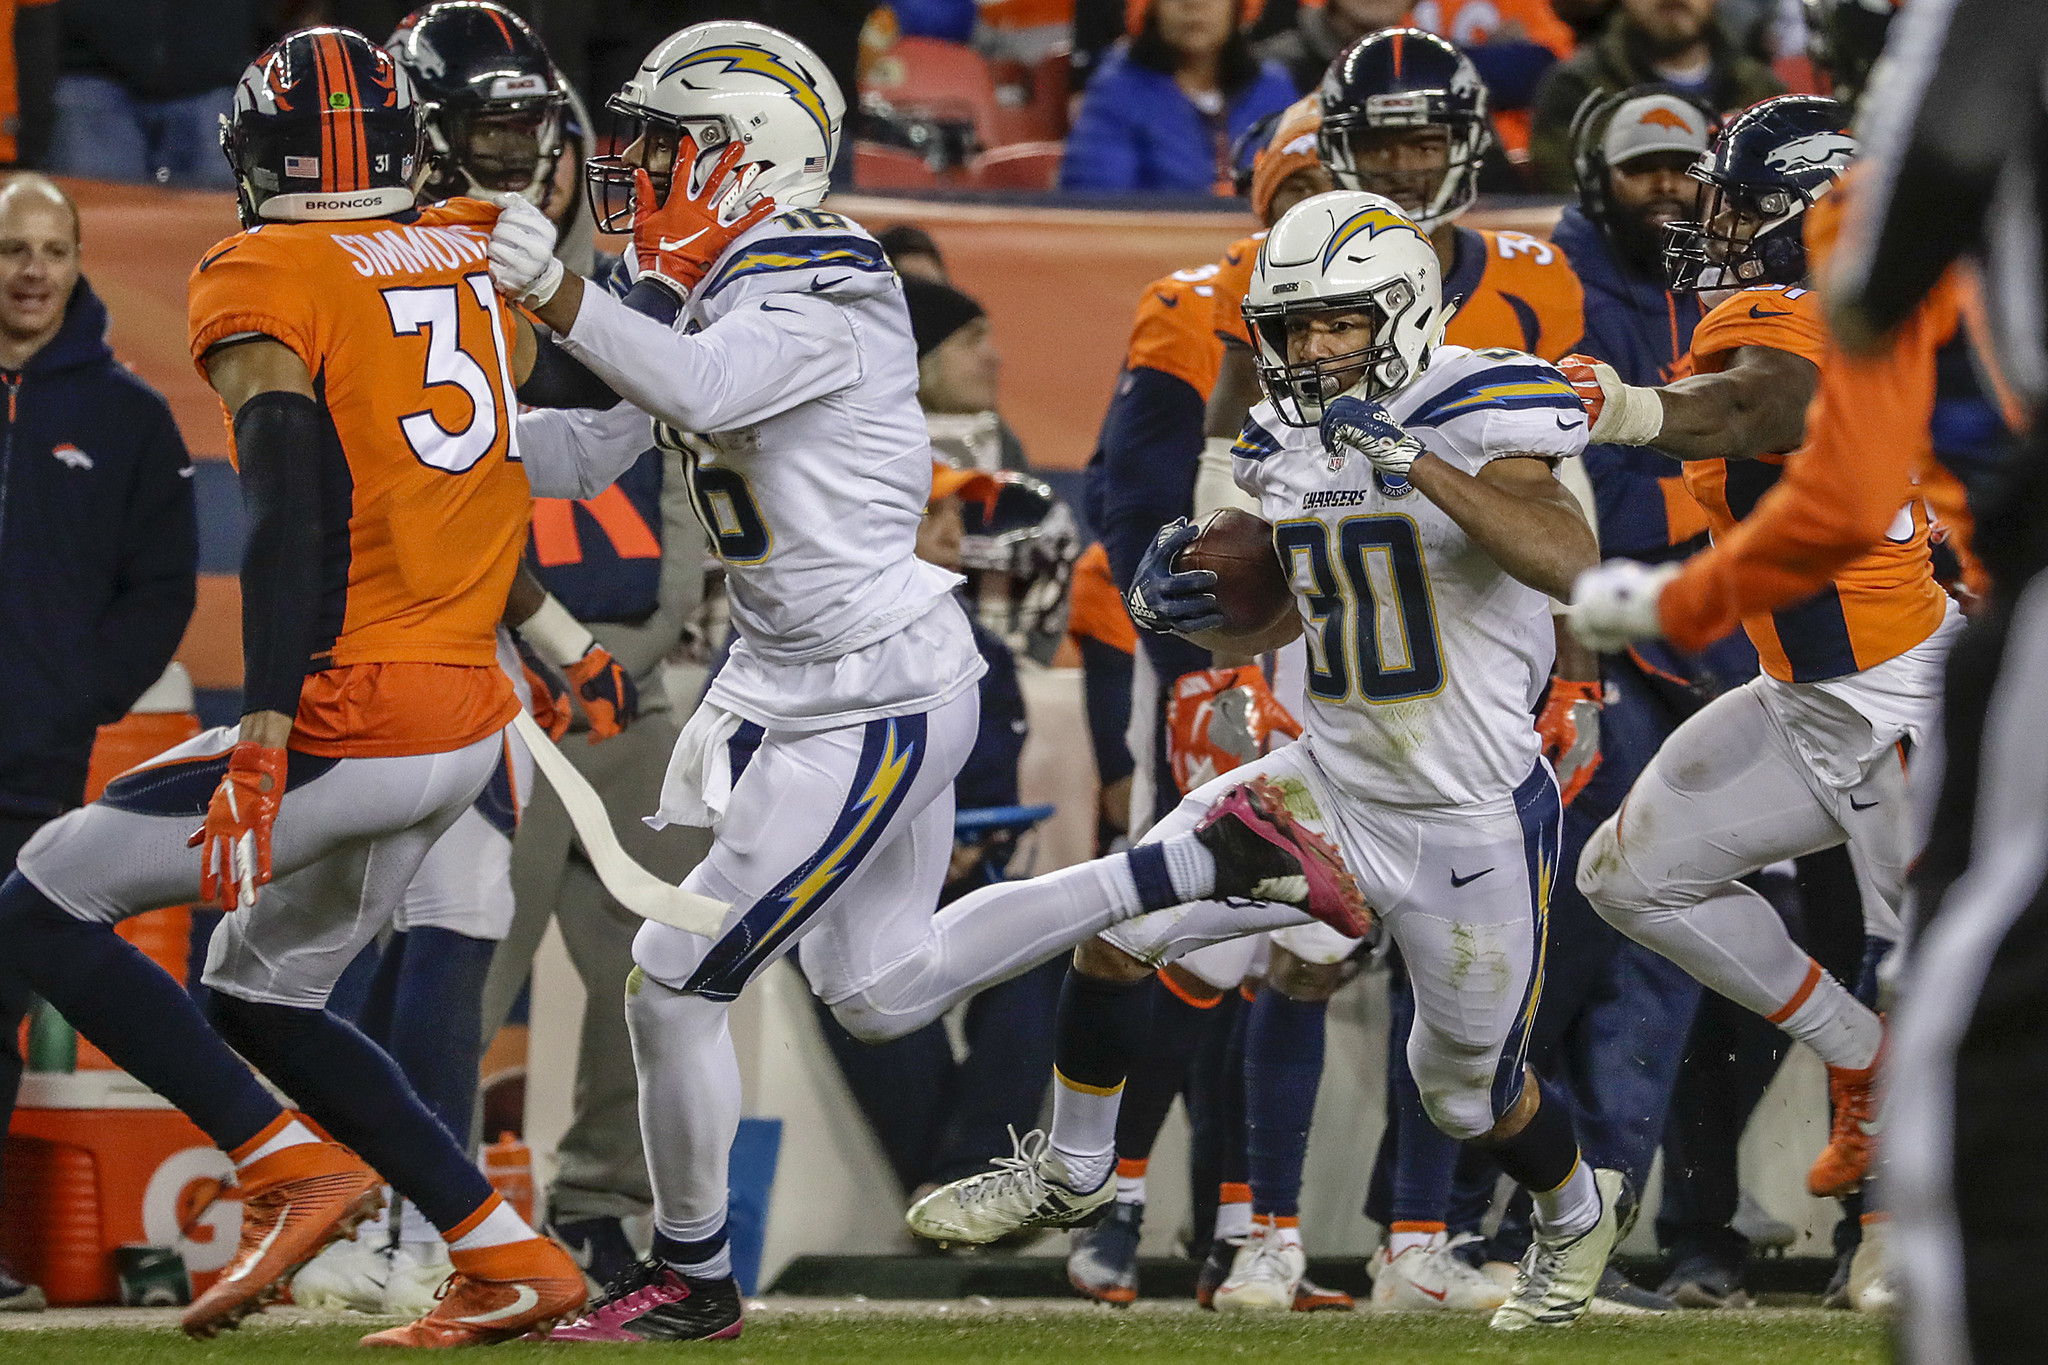 Las Vegas establishes Chargers as 2 1/2-point underdogs in playoff opener at Baltimore